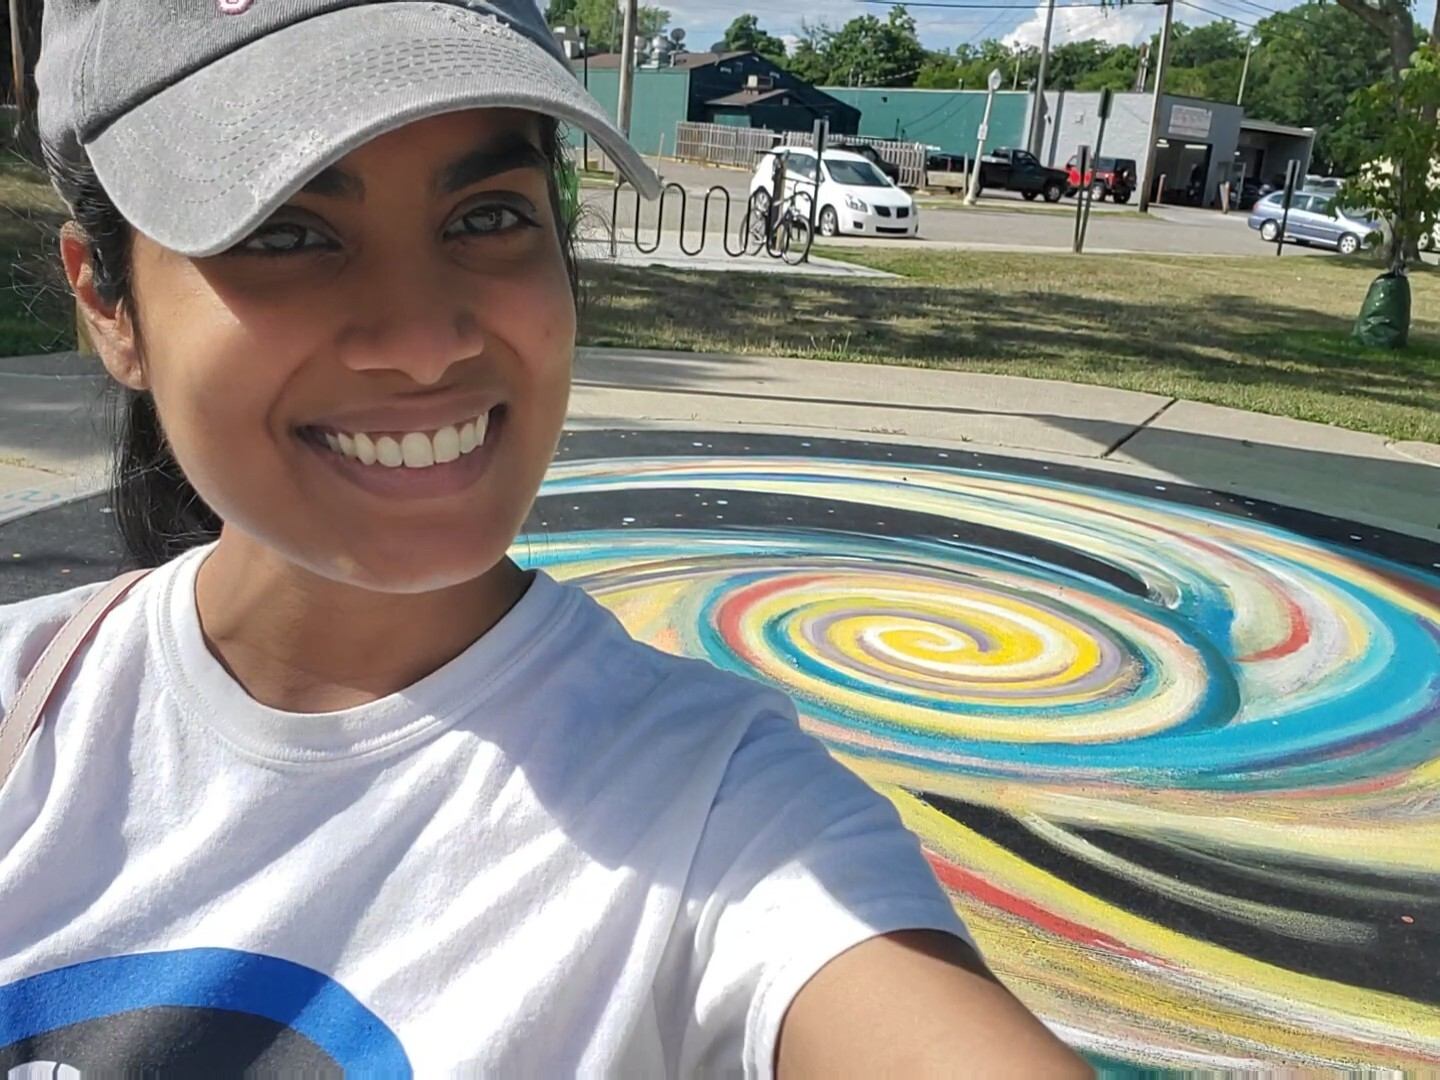 A photo of a person wearing a white T-shirt and a baseball cap. In the background is a piece of science art on the ground, consisting of a series of colored swirl shapes.